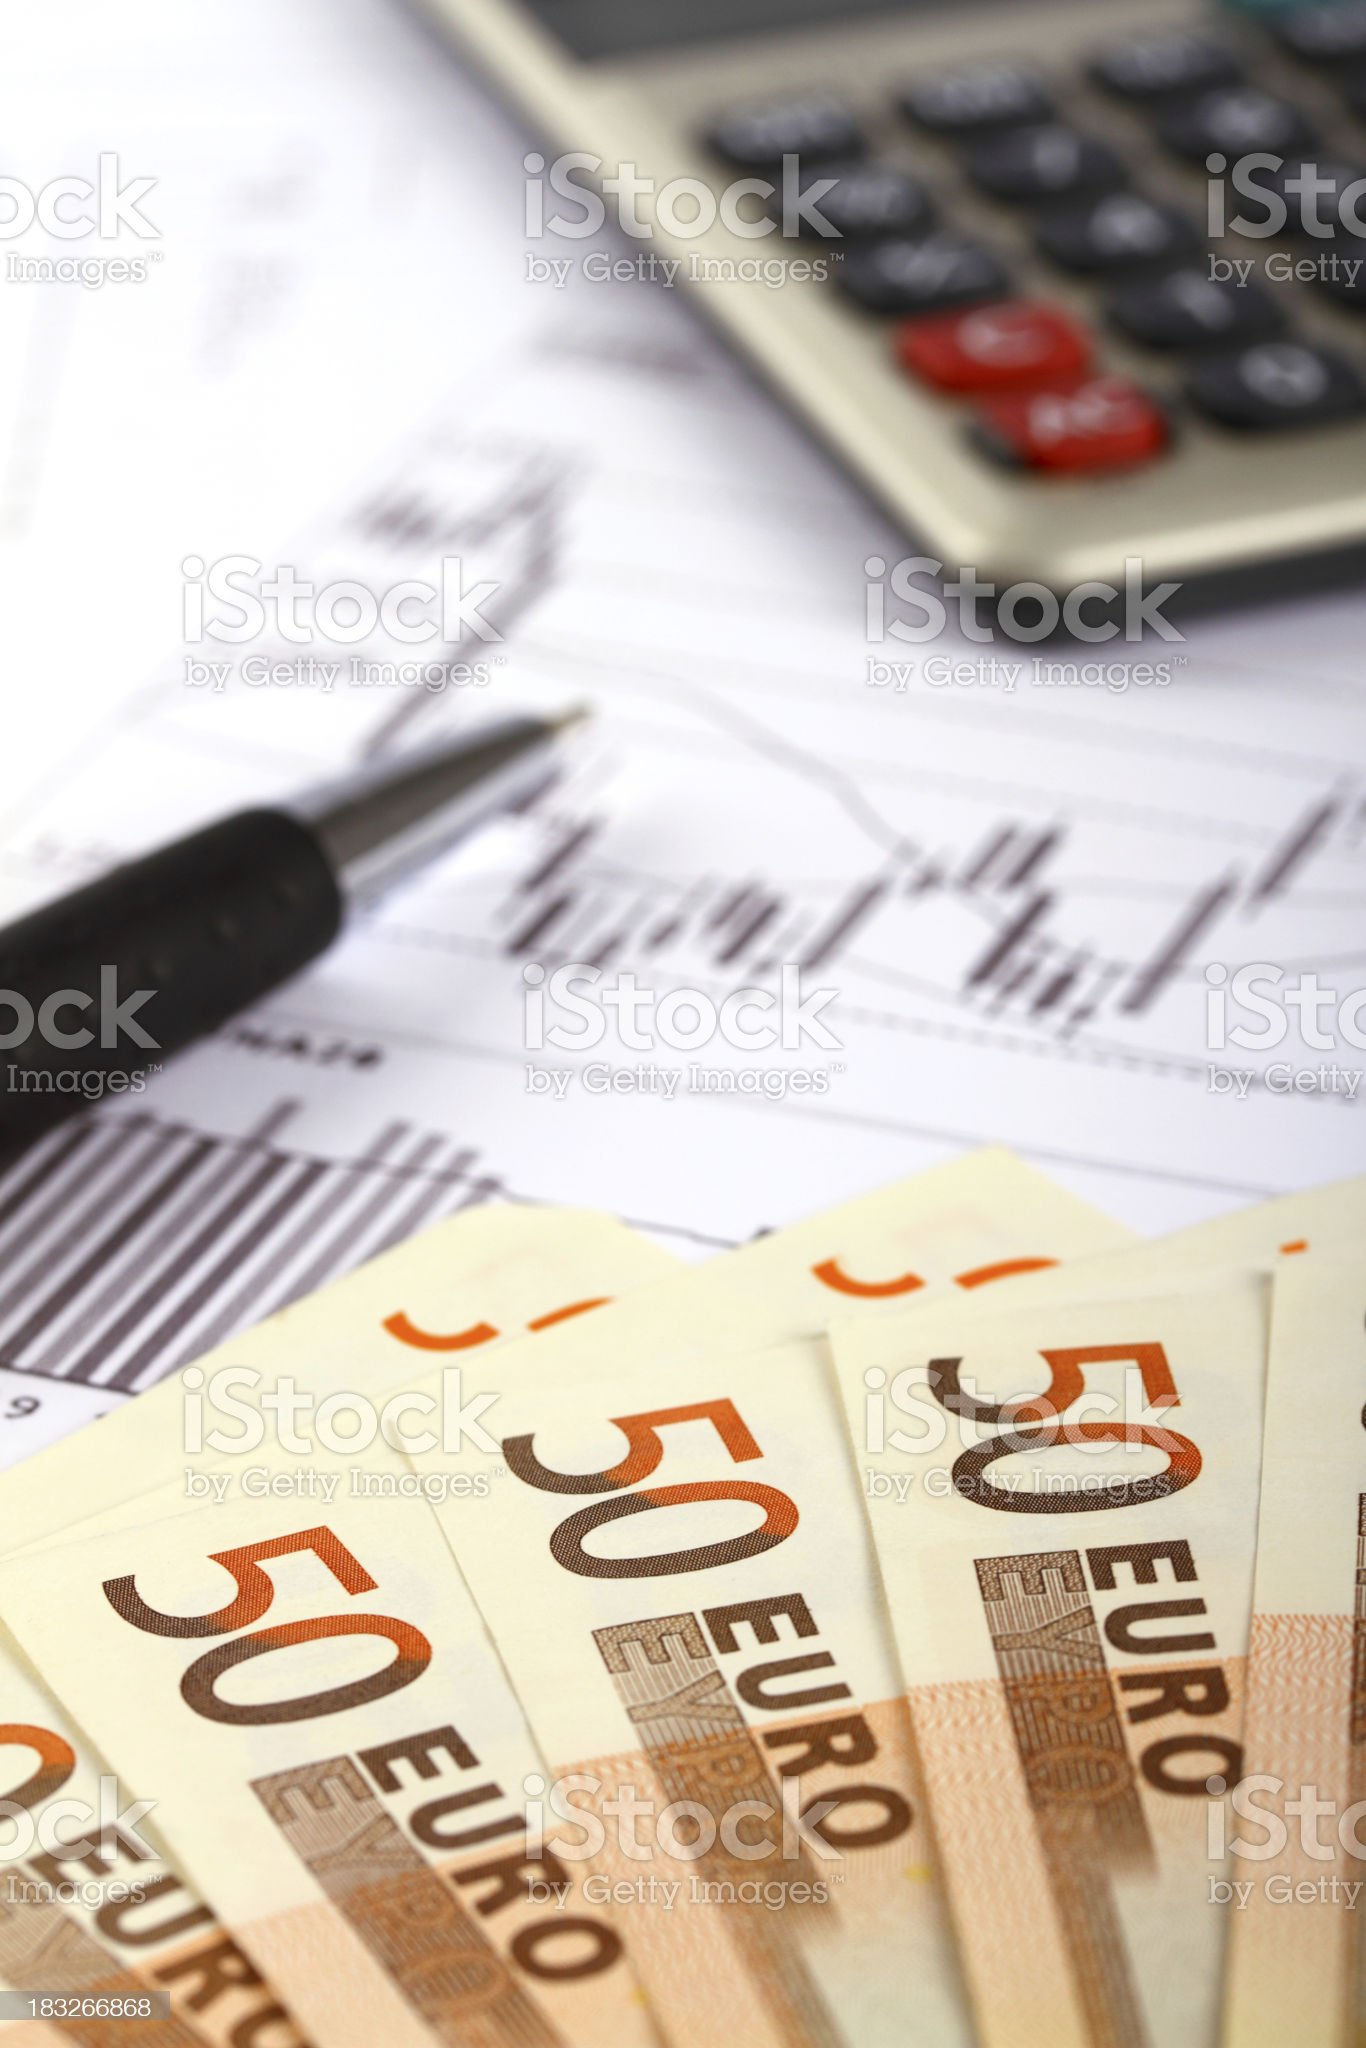 Euro bank notes with financial report royalty-free stock photo